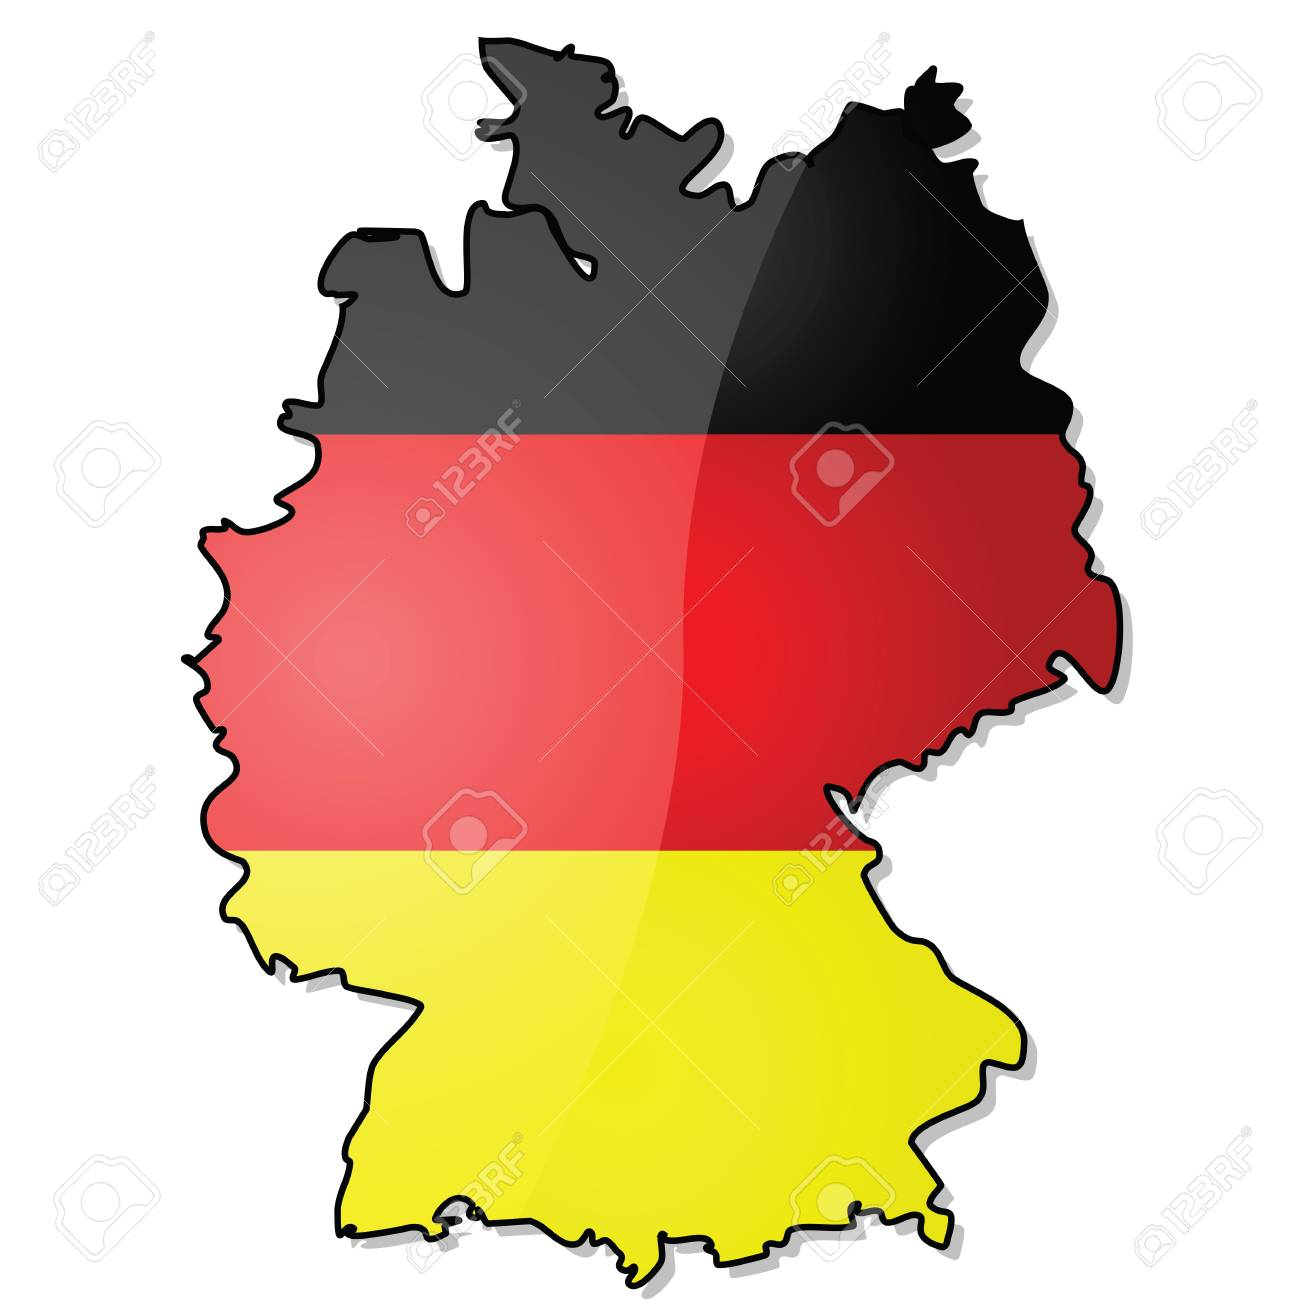 Map Of Germany Over The Years.Glossy Illustration Showing The Map Of Germany With Its Flag